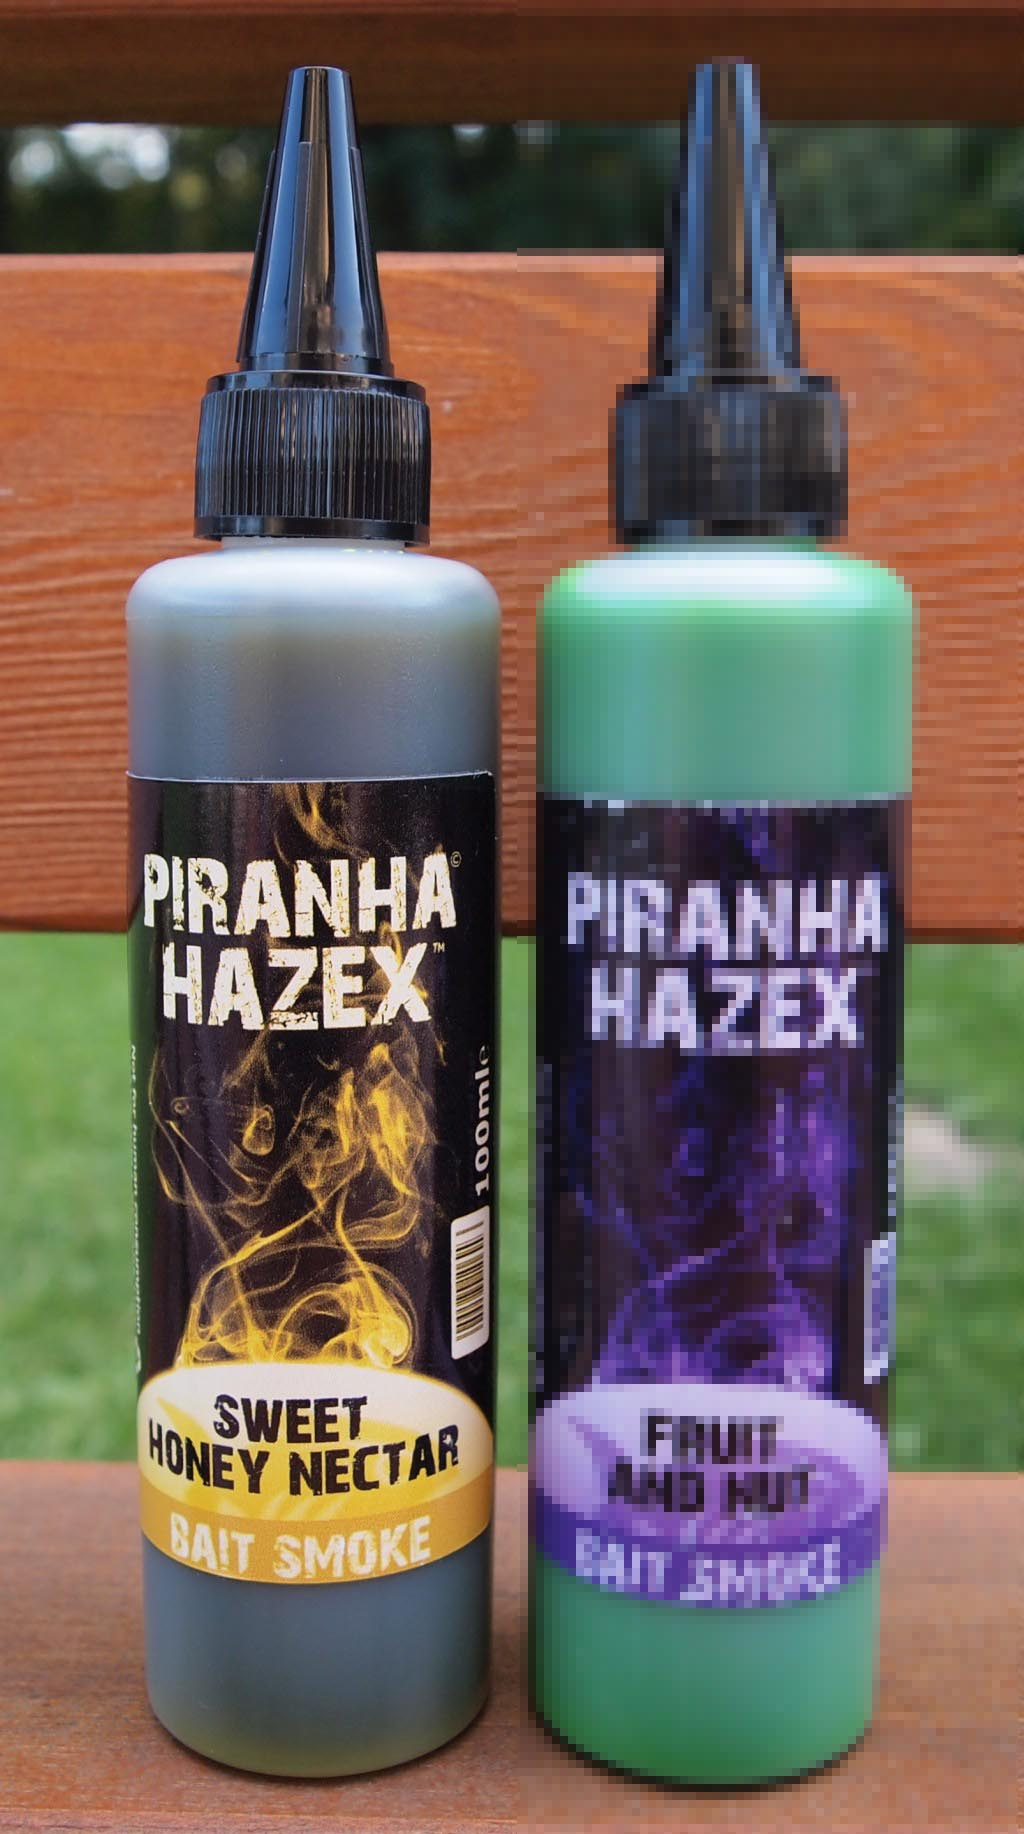 PIRANHA HAZEX SWEET HONEY NECTAR